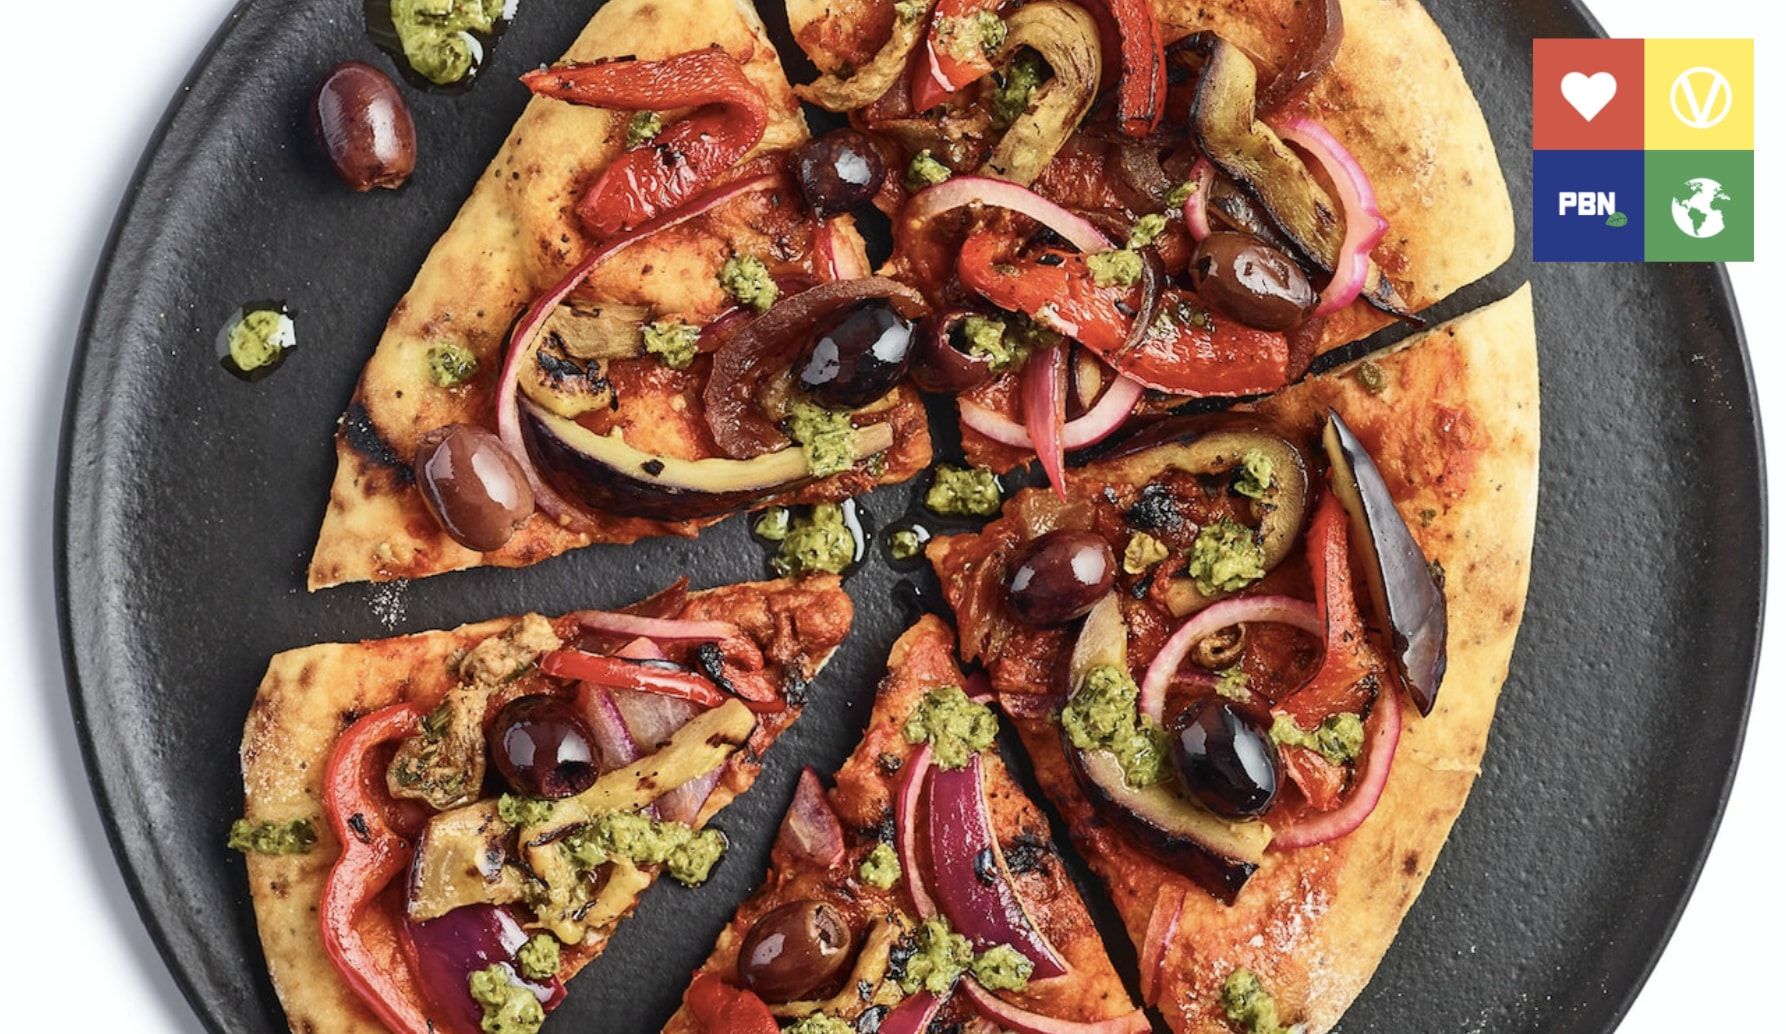 Pizza from Tesco's vegan Wicked Kitchen range